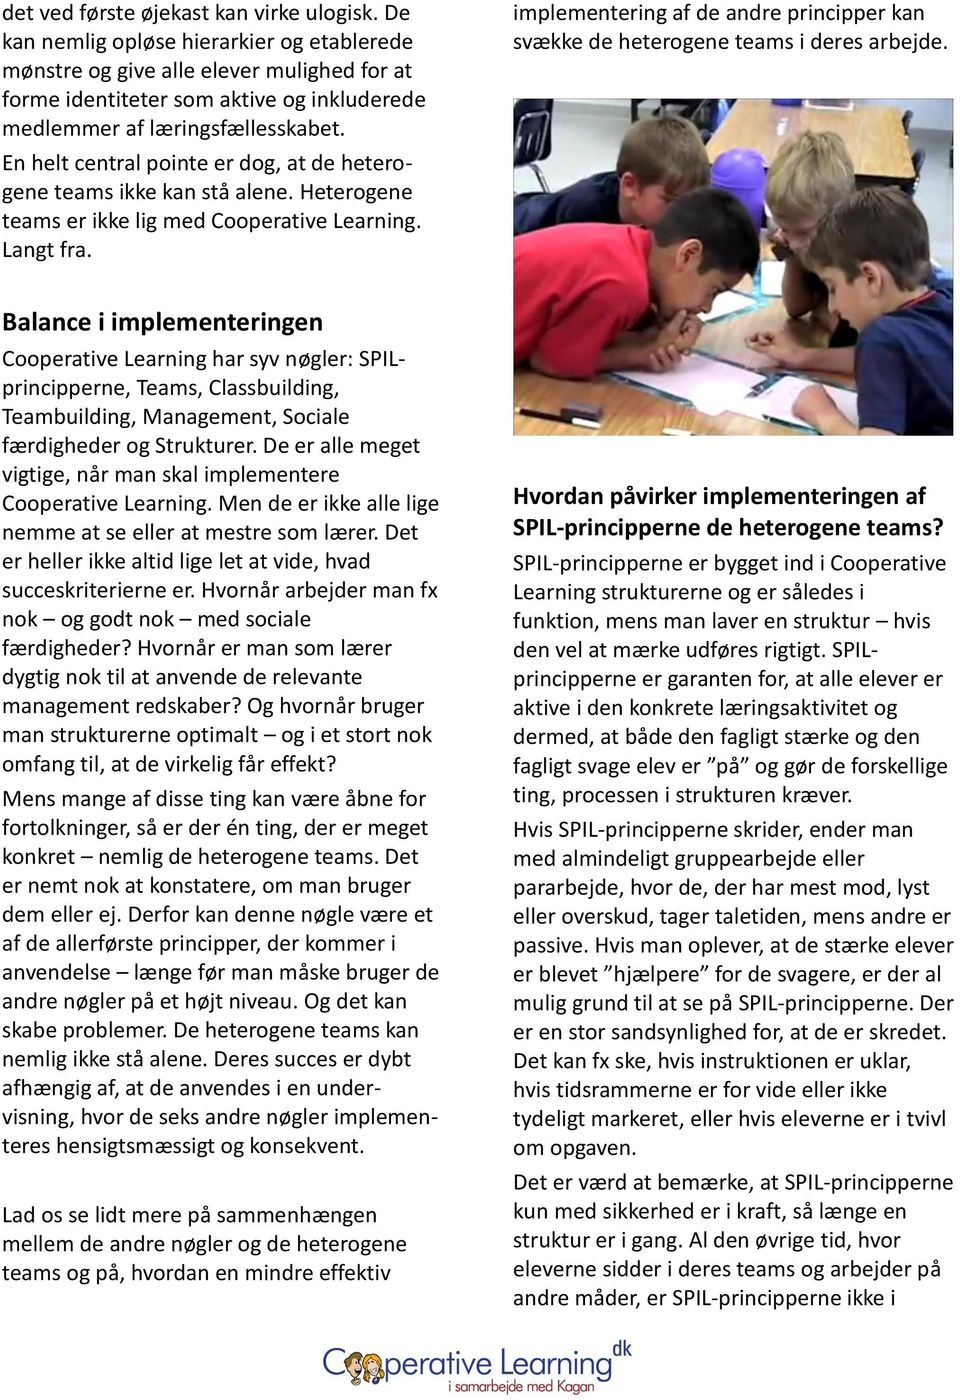 En helt central pointe er dog, at de heterogene teams ikke kan stå alene. Heterogene teams er ikke lig med Cooperative Learning. Langt fra.